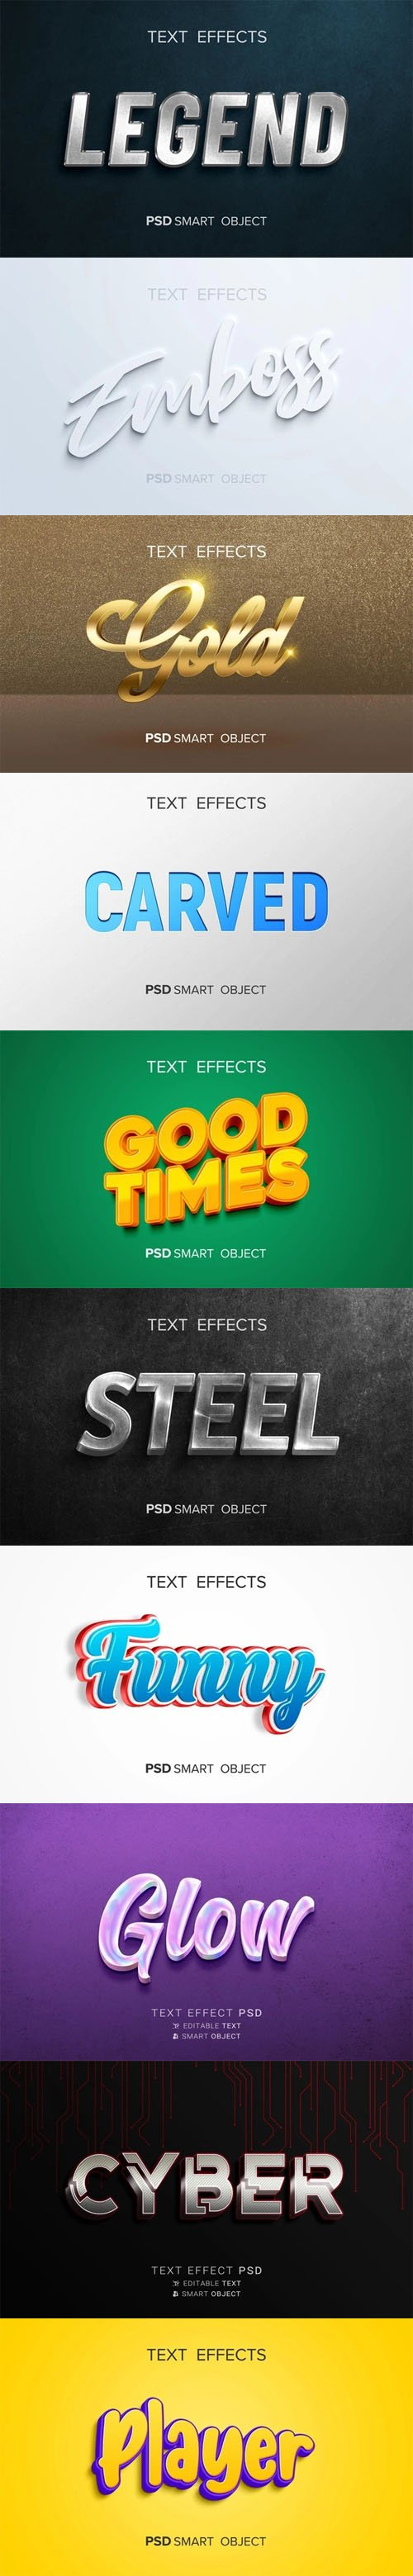 10 Creative Photoshop Text Effects